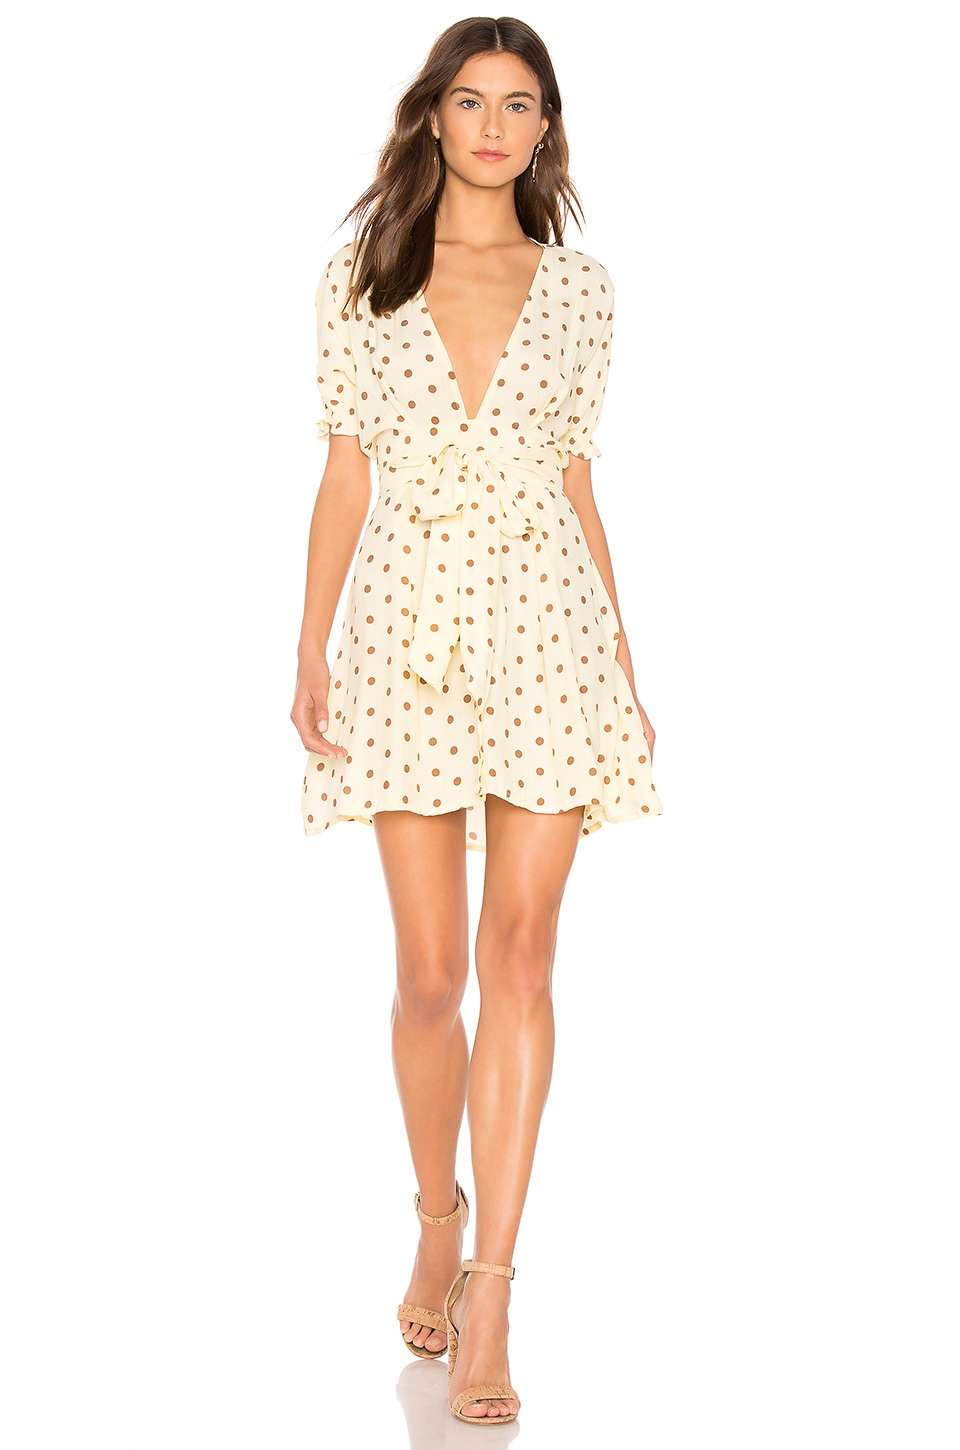 FAITHFULL THE BRAND Vanelli Mini Dress in Lemon Sylve Dot